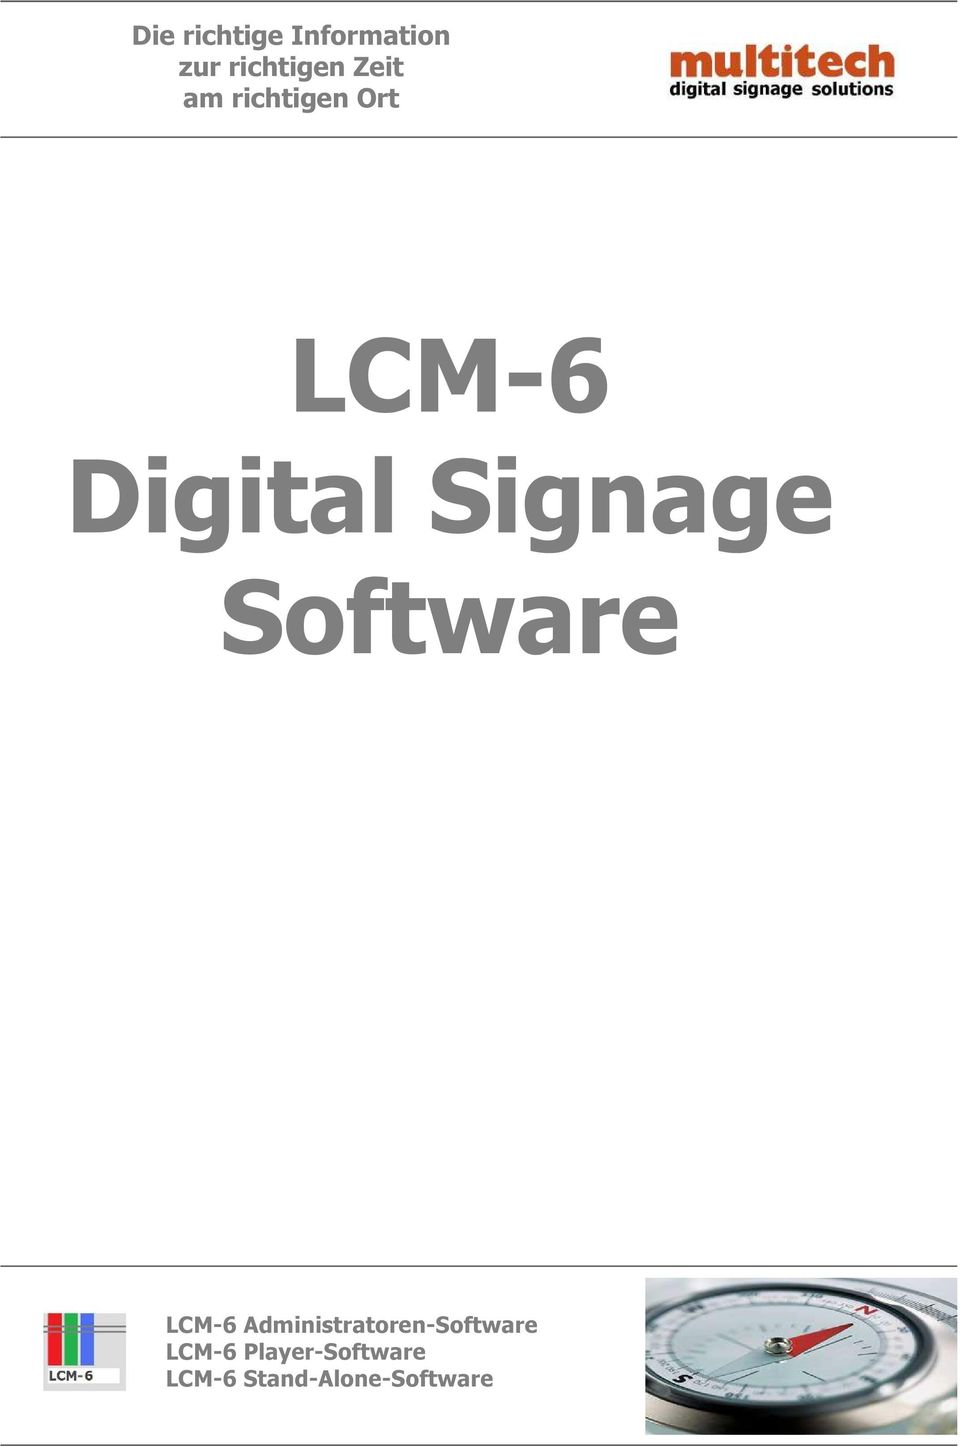 Signage Software LCM-6